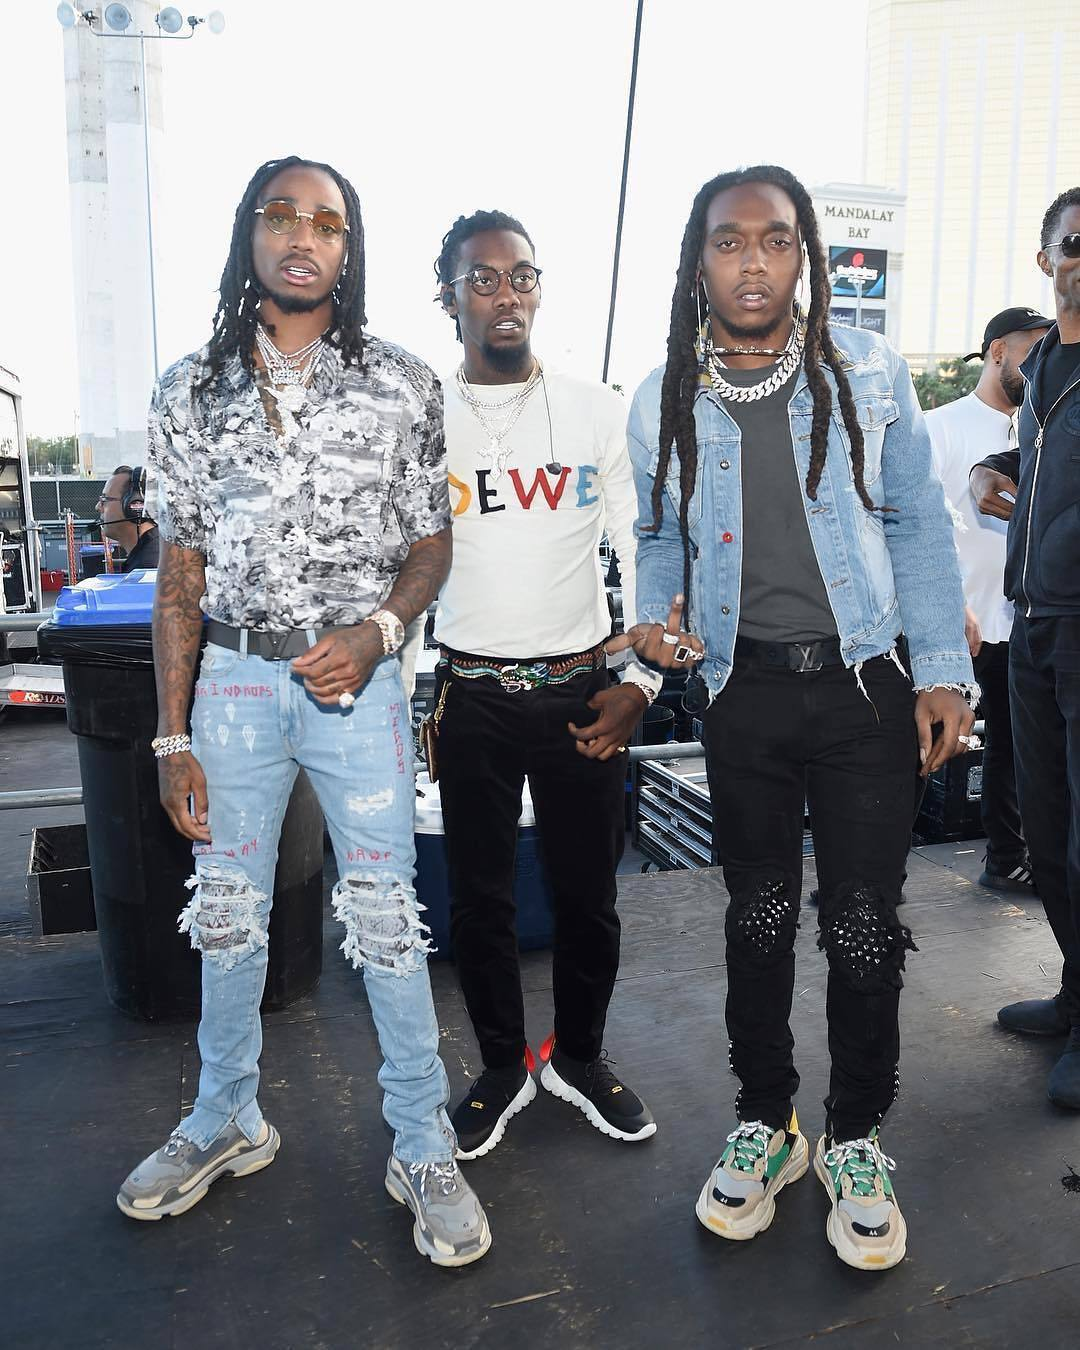 SPOTTED: Migos In Loewe, Gucci + Balenciaga Triple S Sneakers